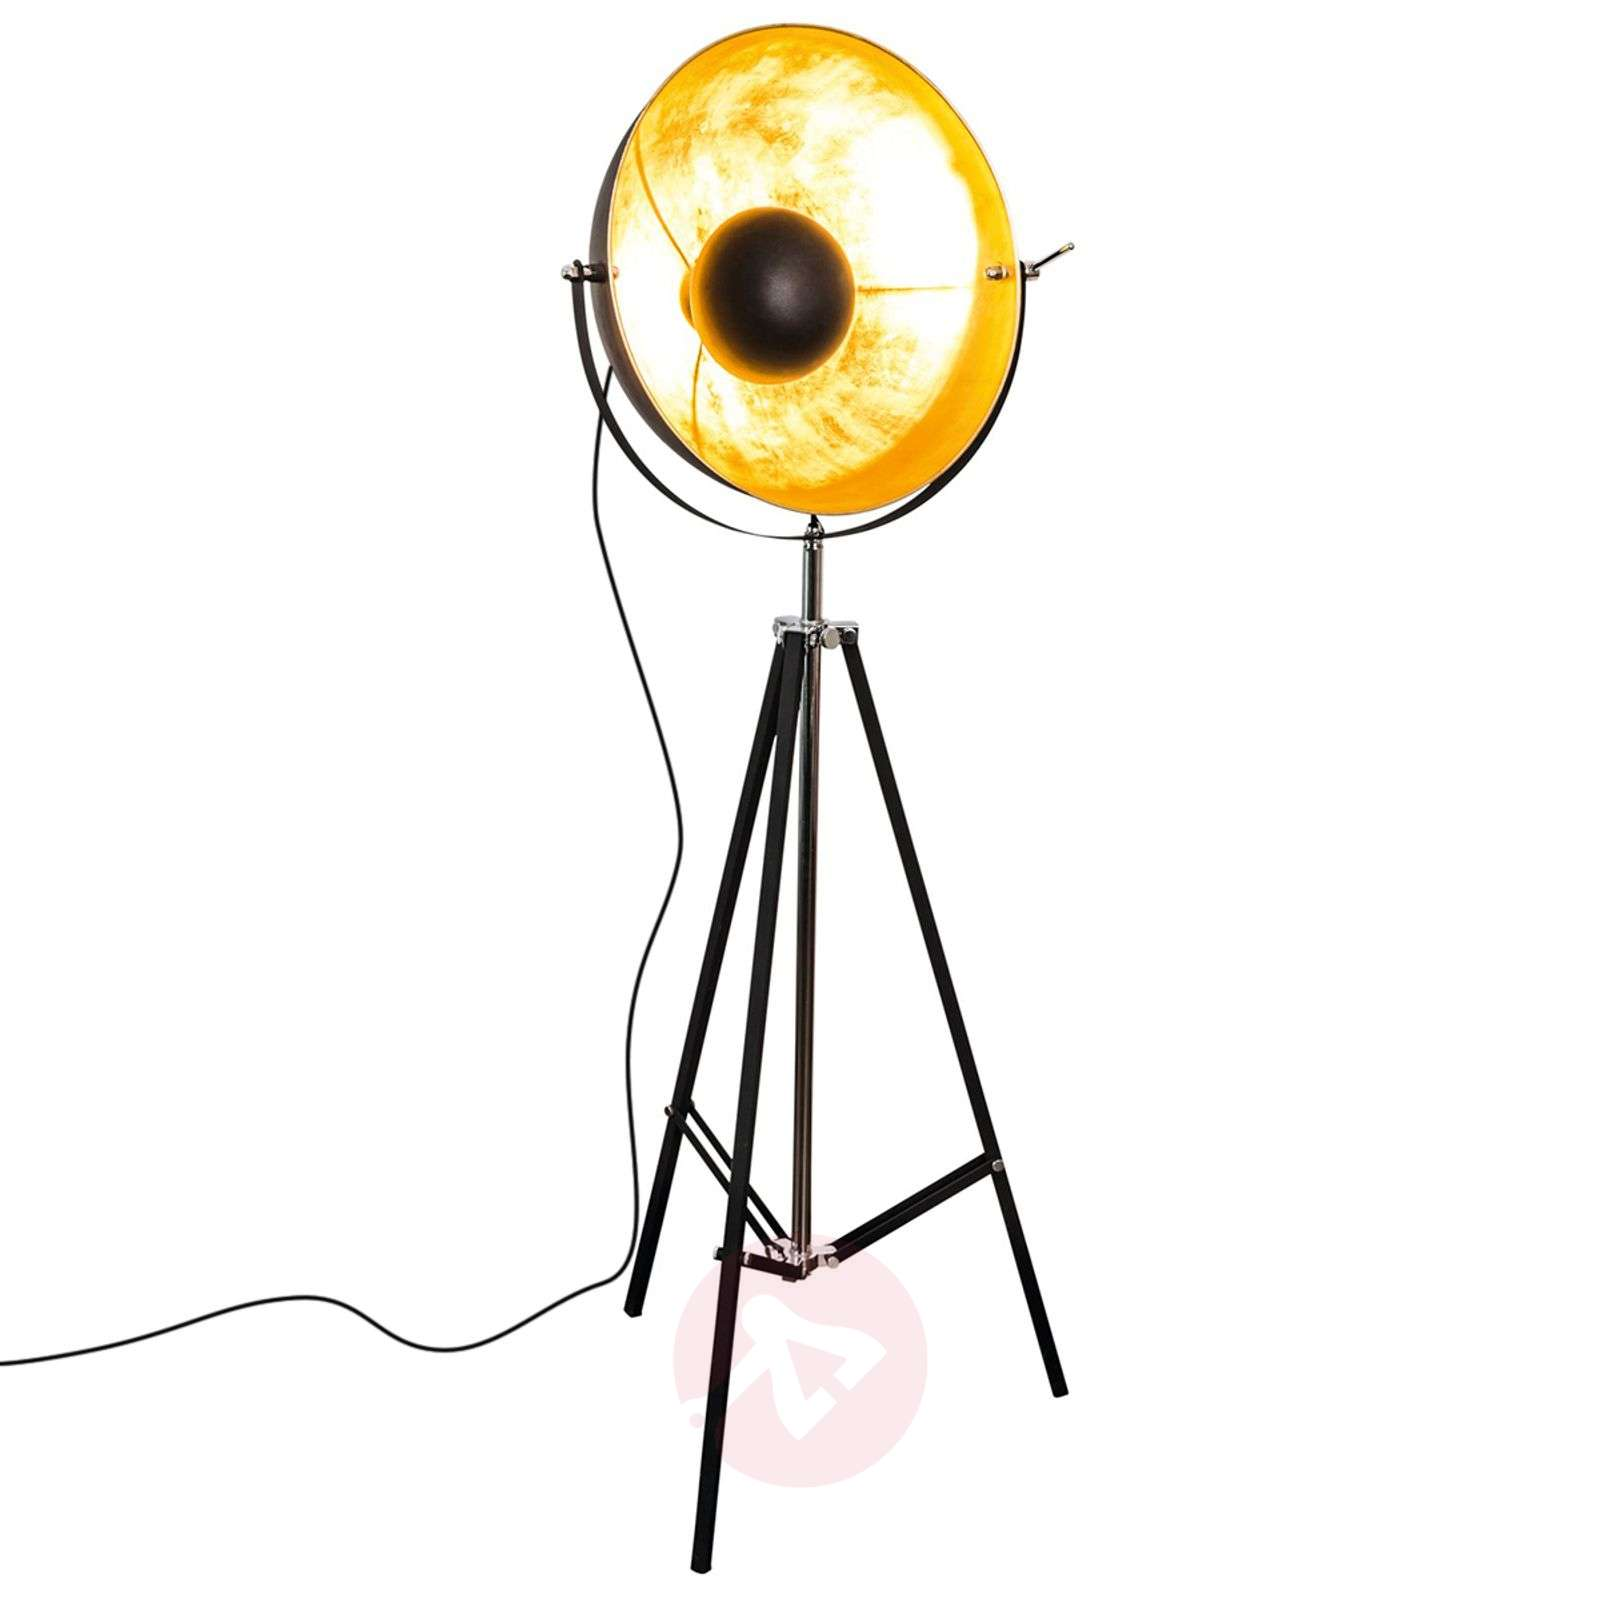 Unusual Caracas tripod floor lamp-9506073-09